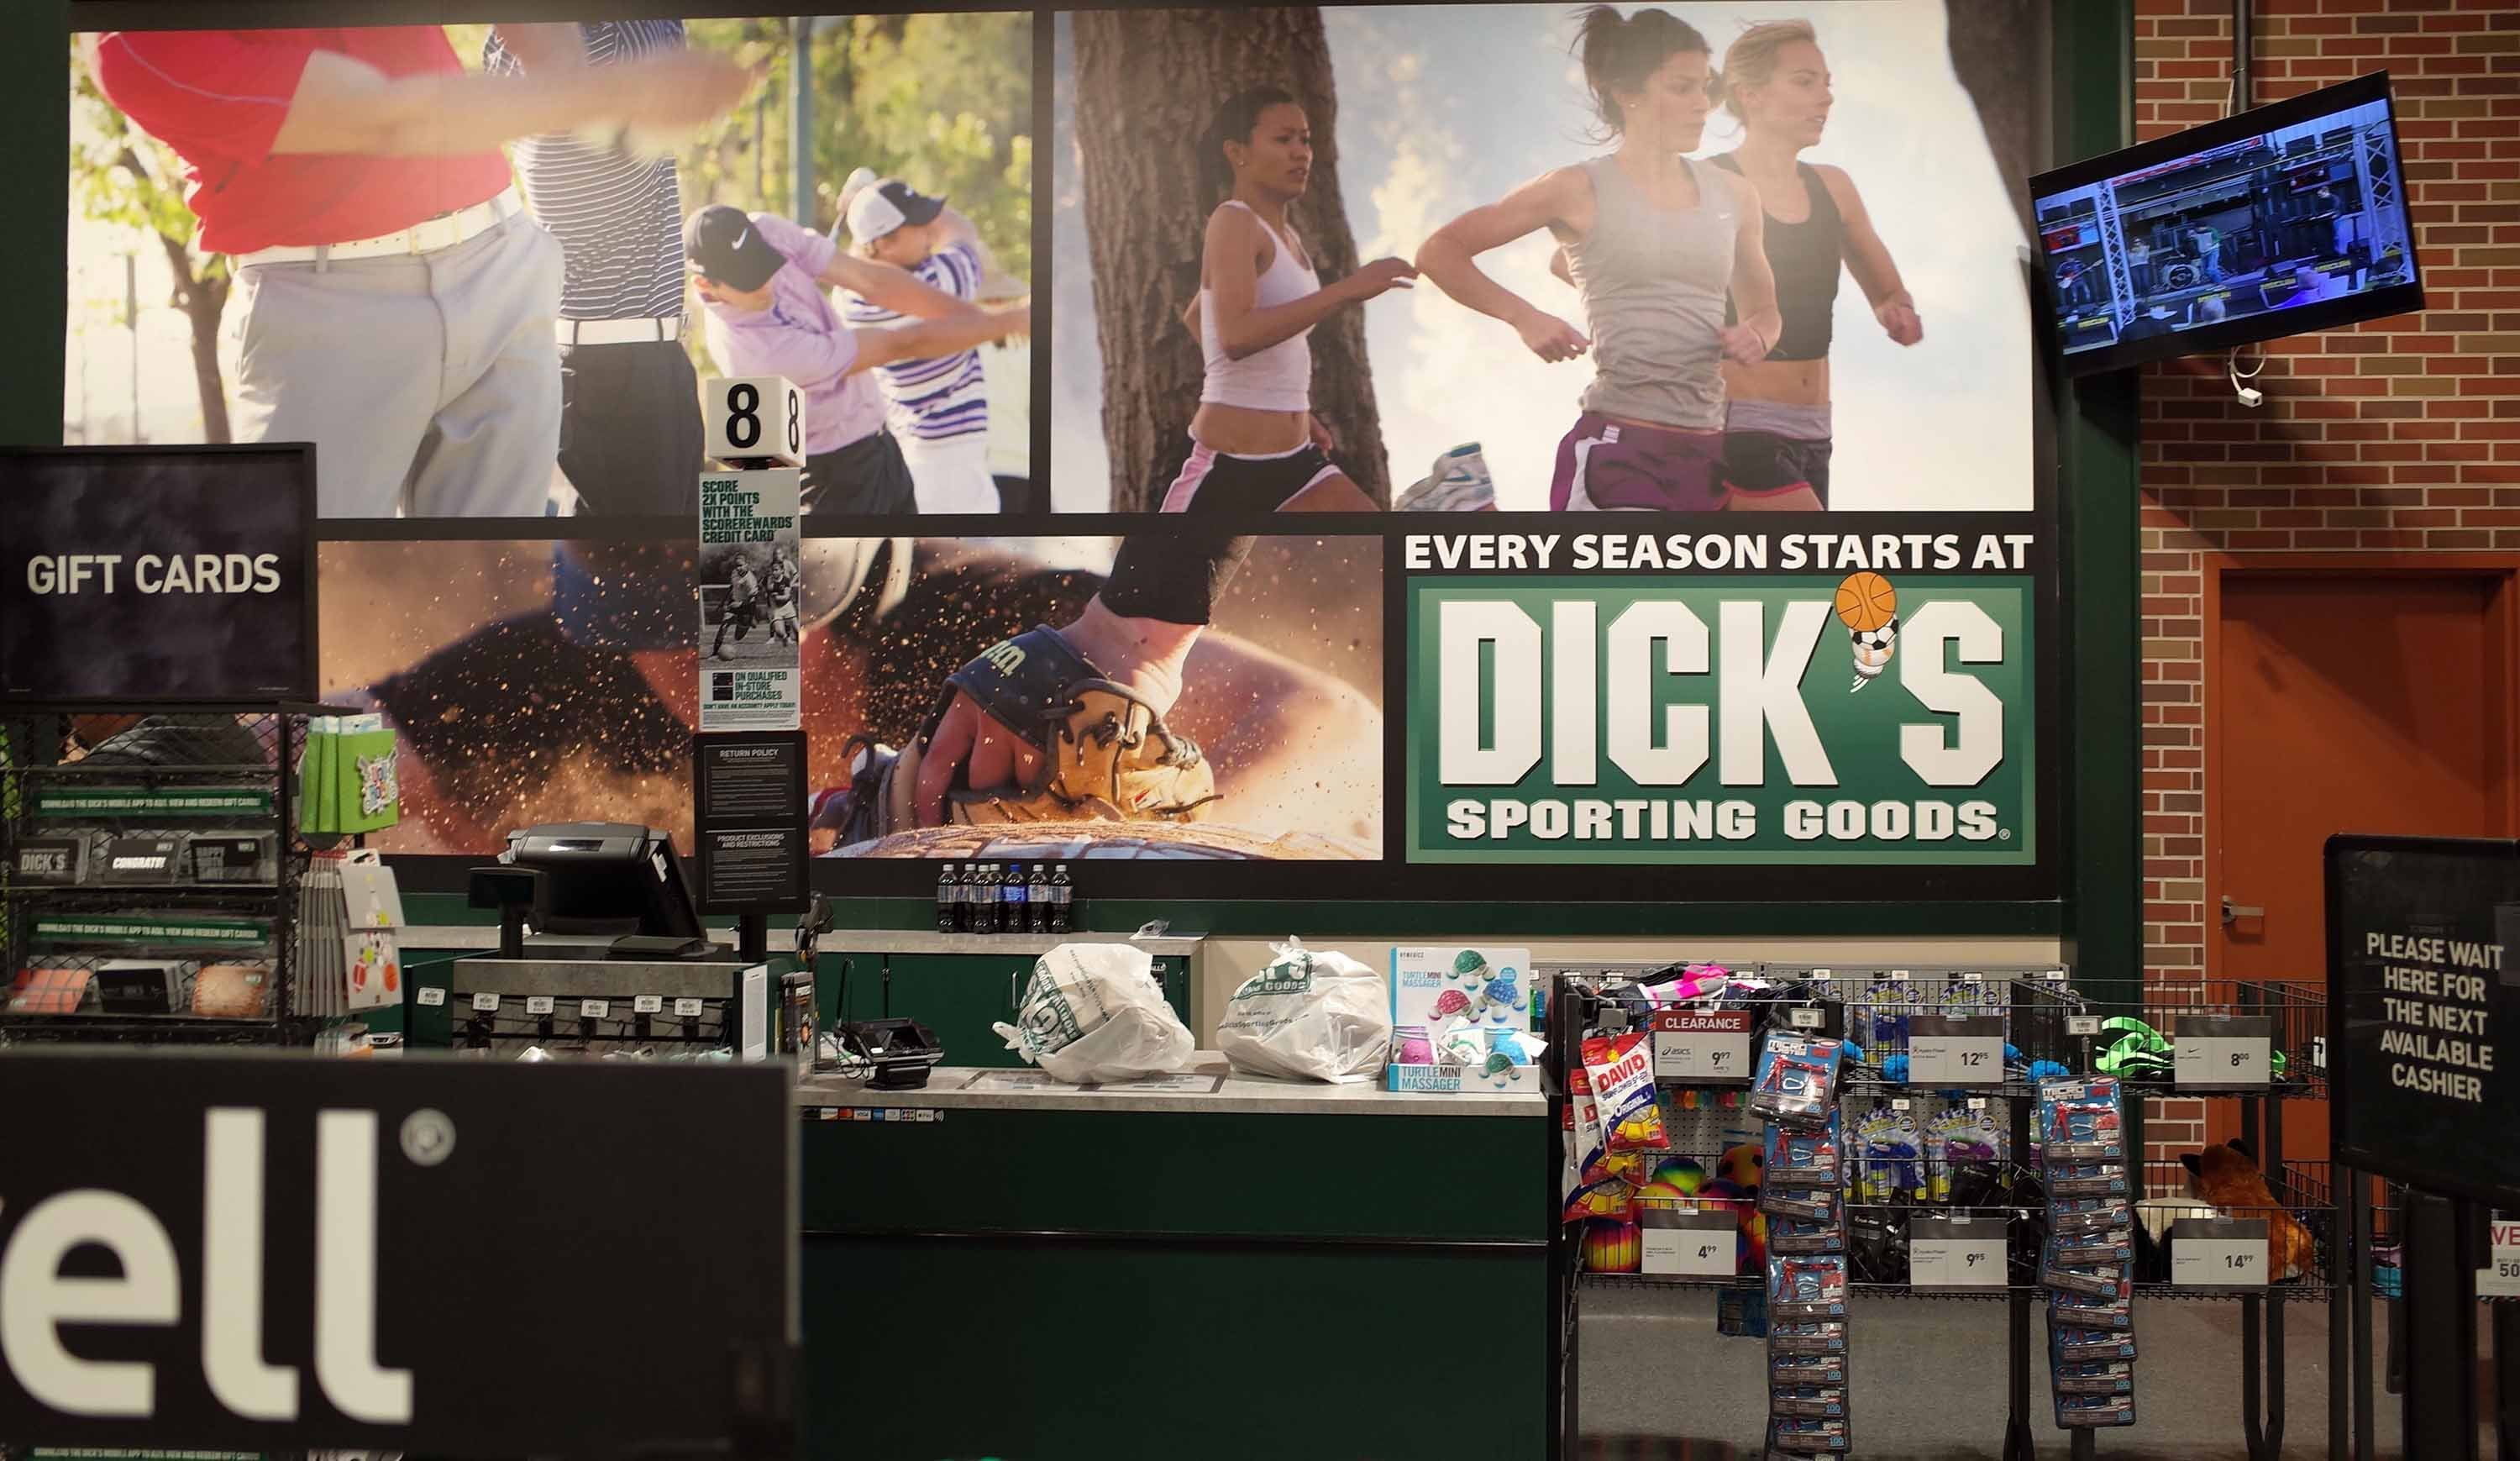 Dick's is still figuring out what to do with its gun business